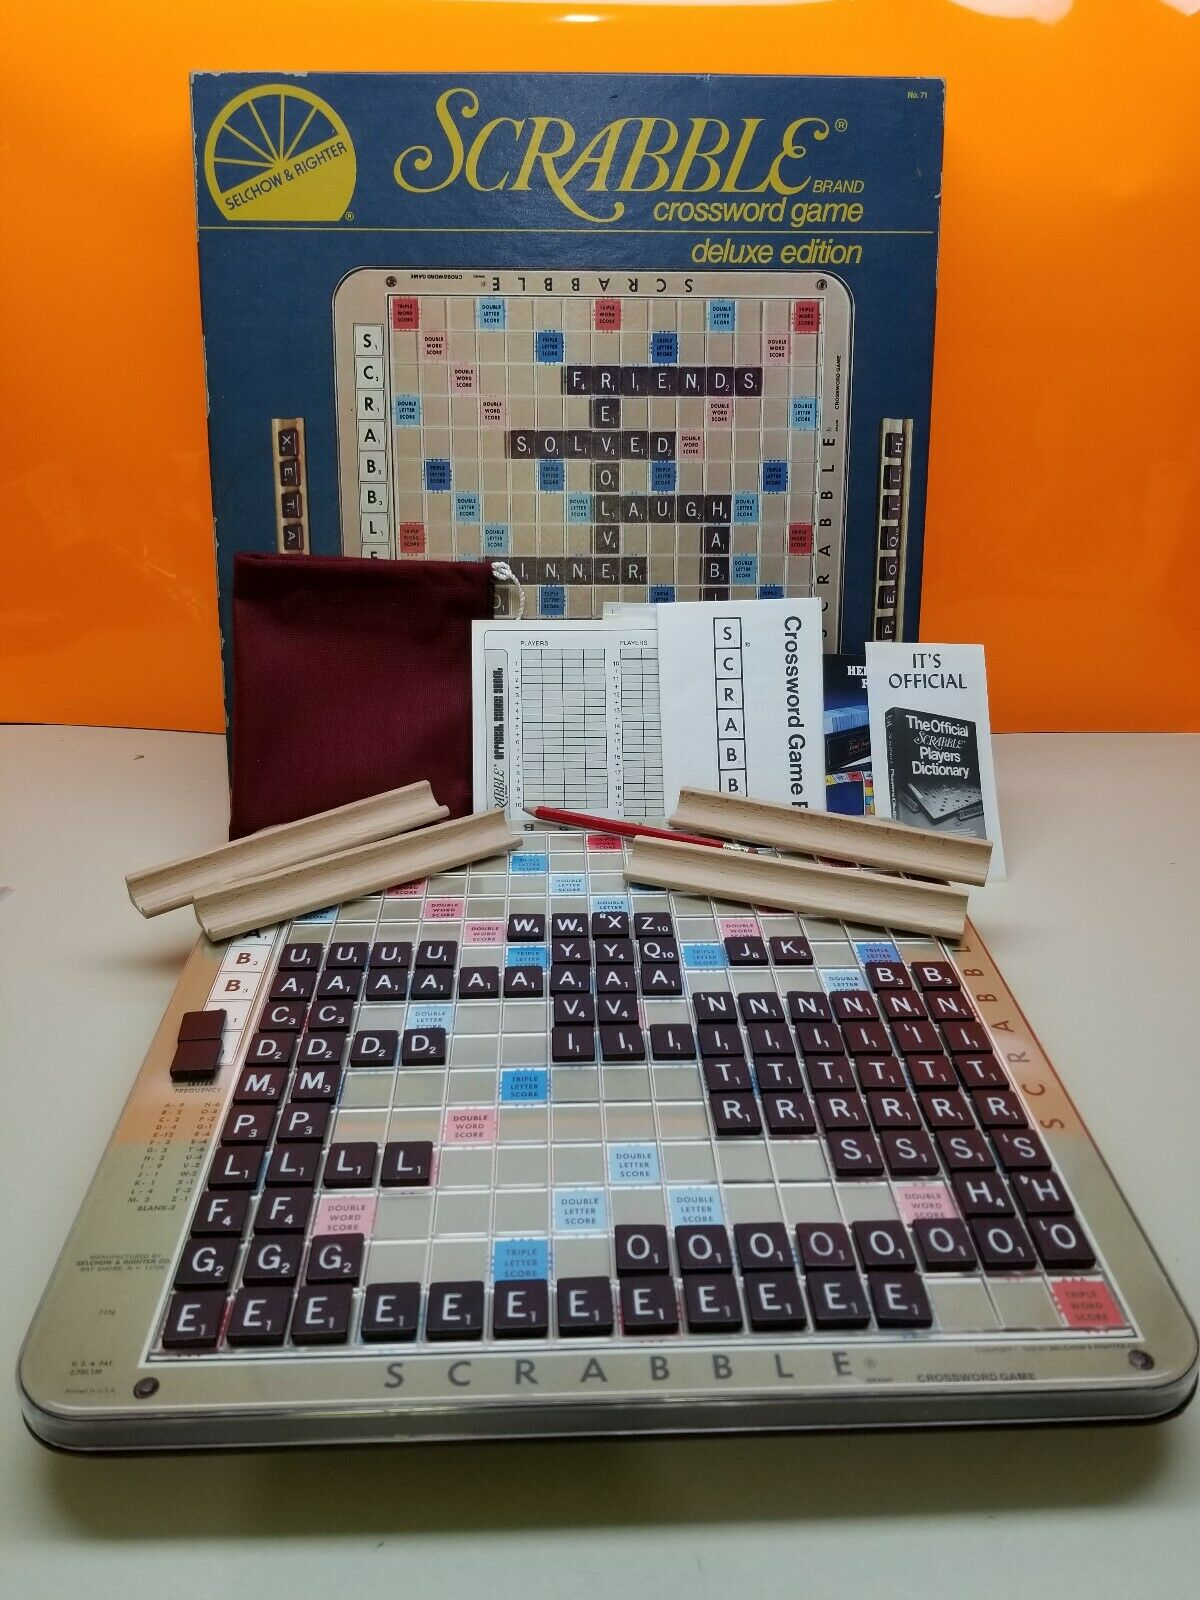 Scrabble Crossword Game Deluxe Edition Vintage Collectible Board Game 1982